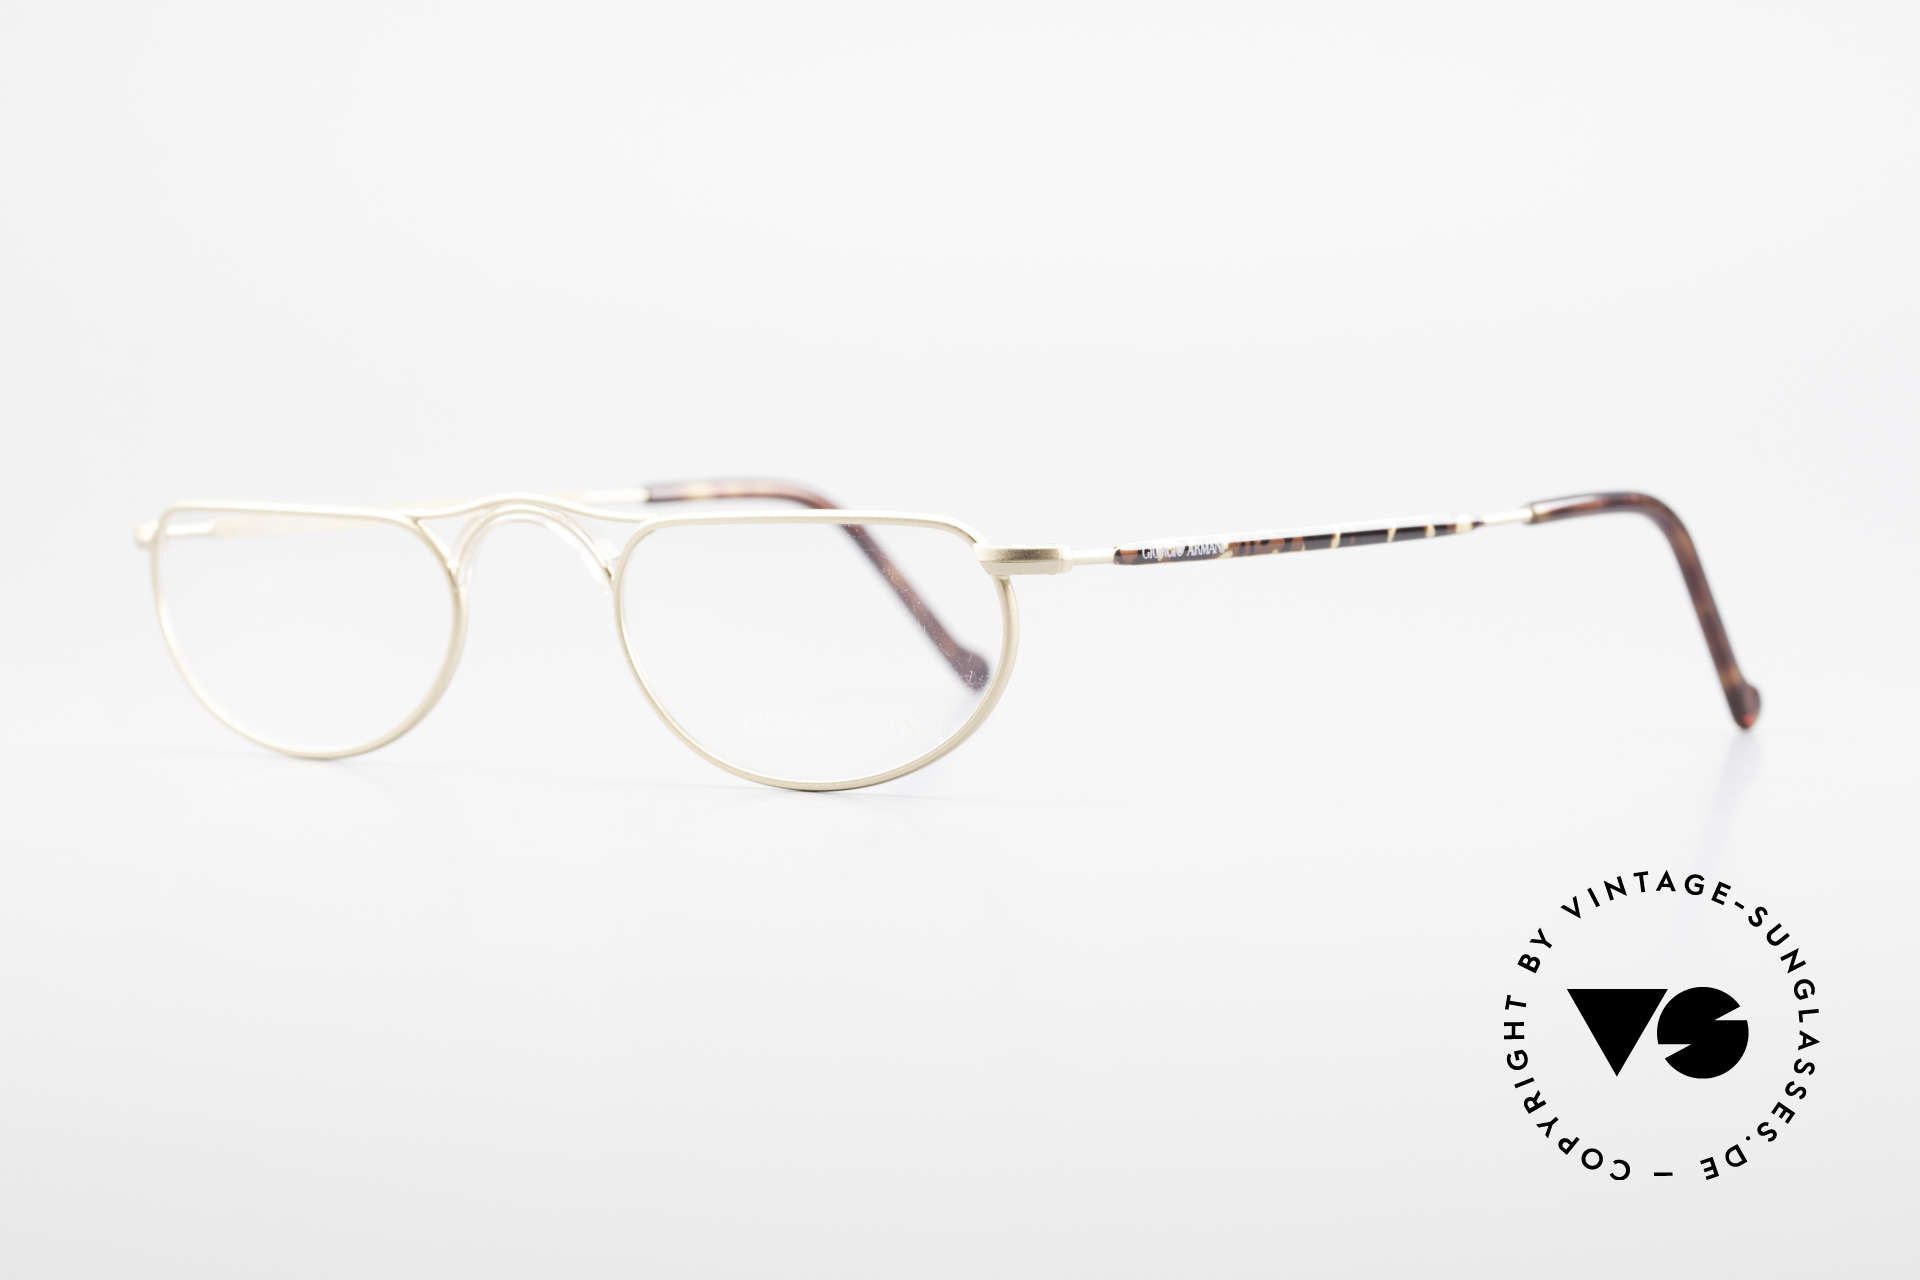 Giorgio Armani 133 Rare Old 80's Reading Glasses, interesting frame finish: dulled gold / chestnut, Made for Men and Women